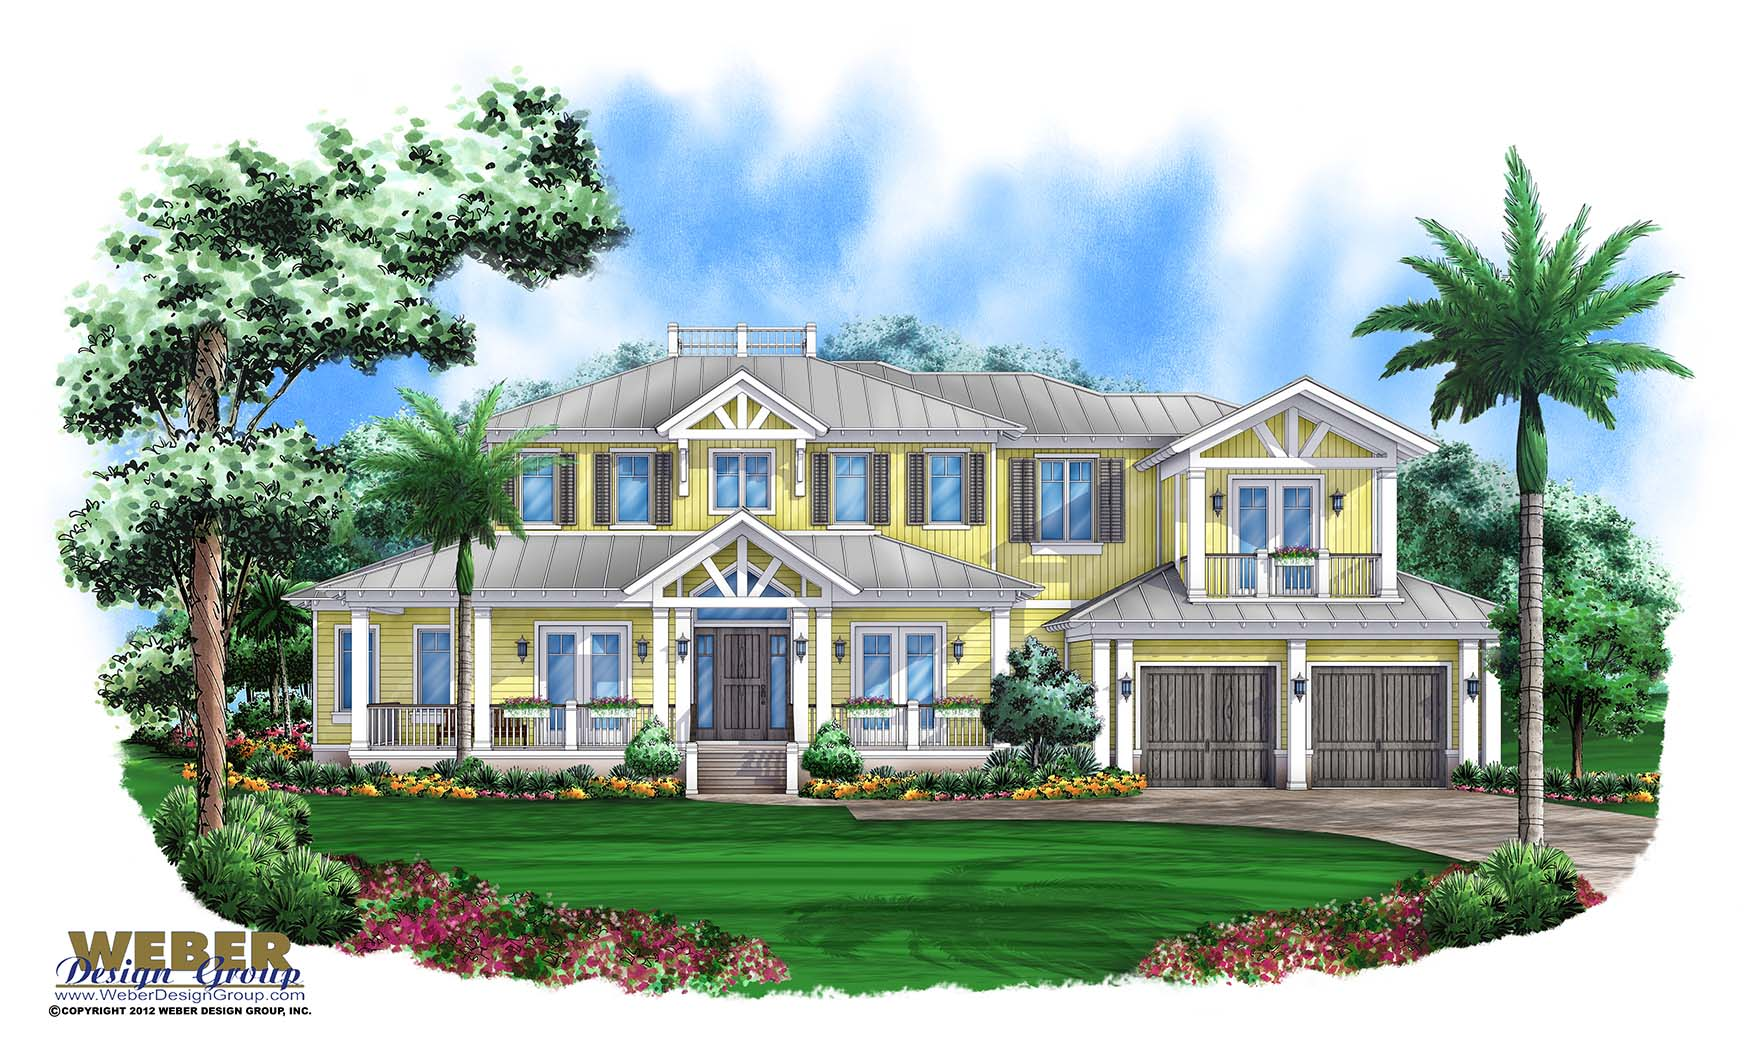 Key west house plans key west island style home floor plans for Coastal house floor plans